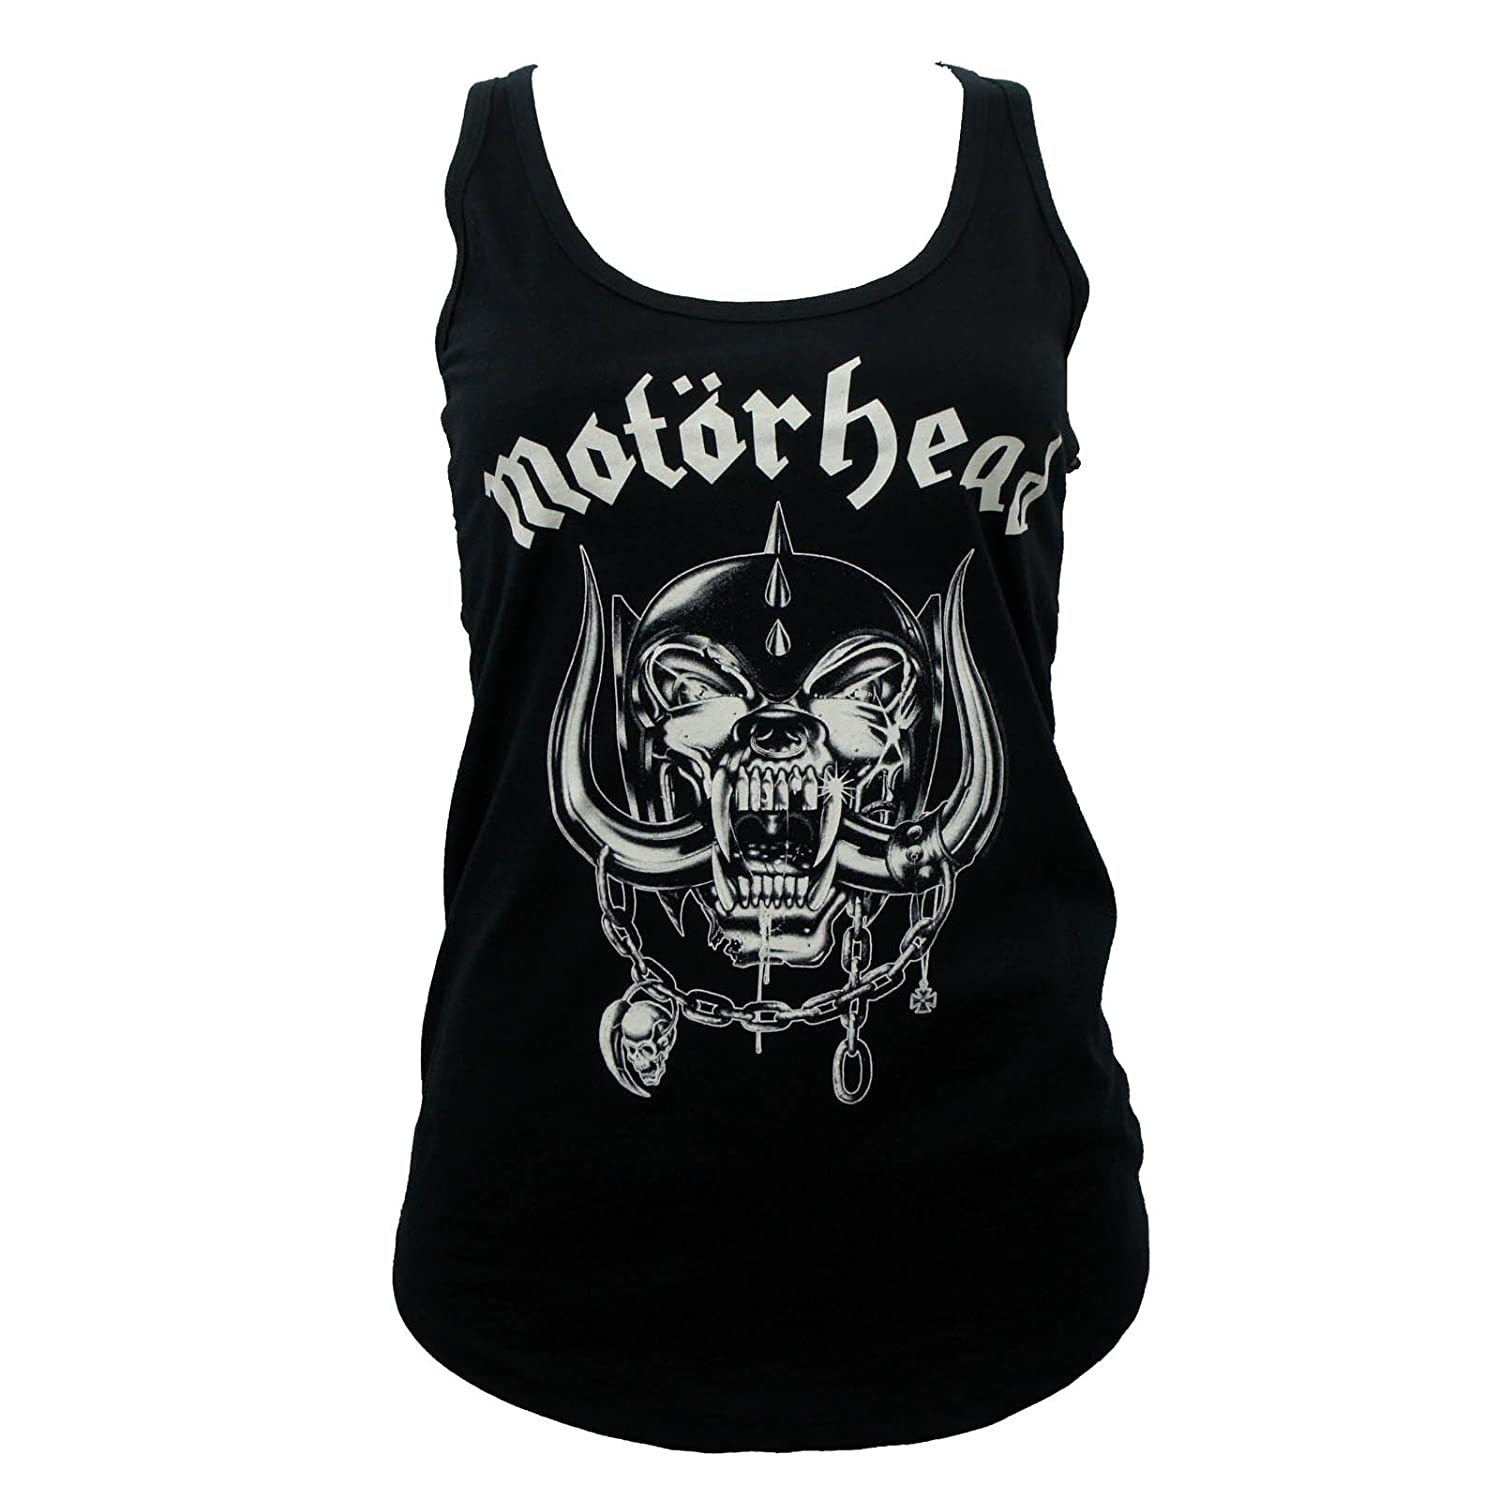 GLOBAL Motorhead Band England Lace Back Juniors Girls Tank Top H3 SPORTGEAR